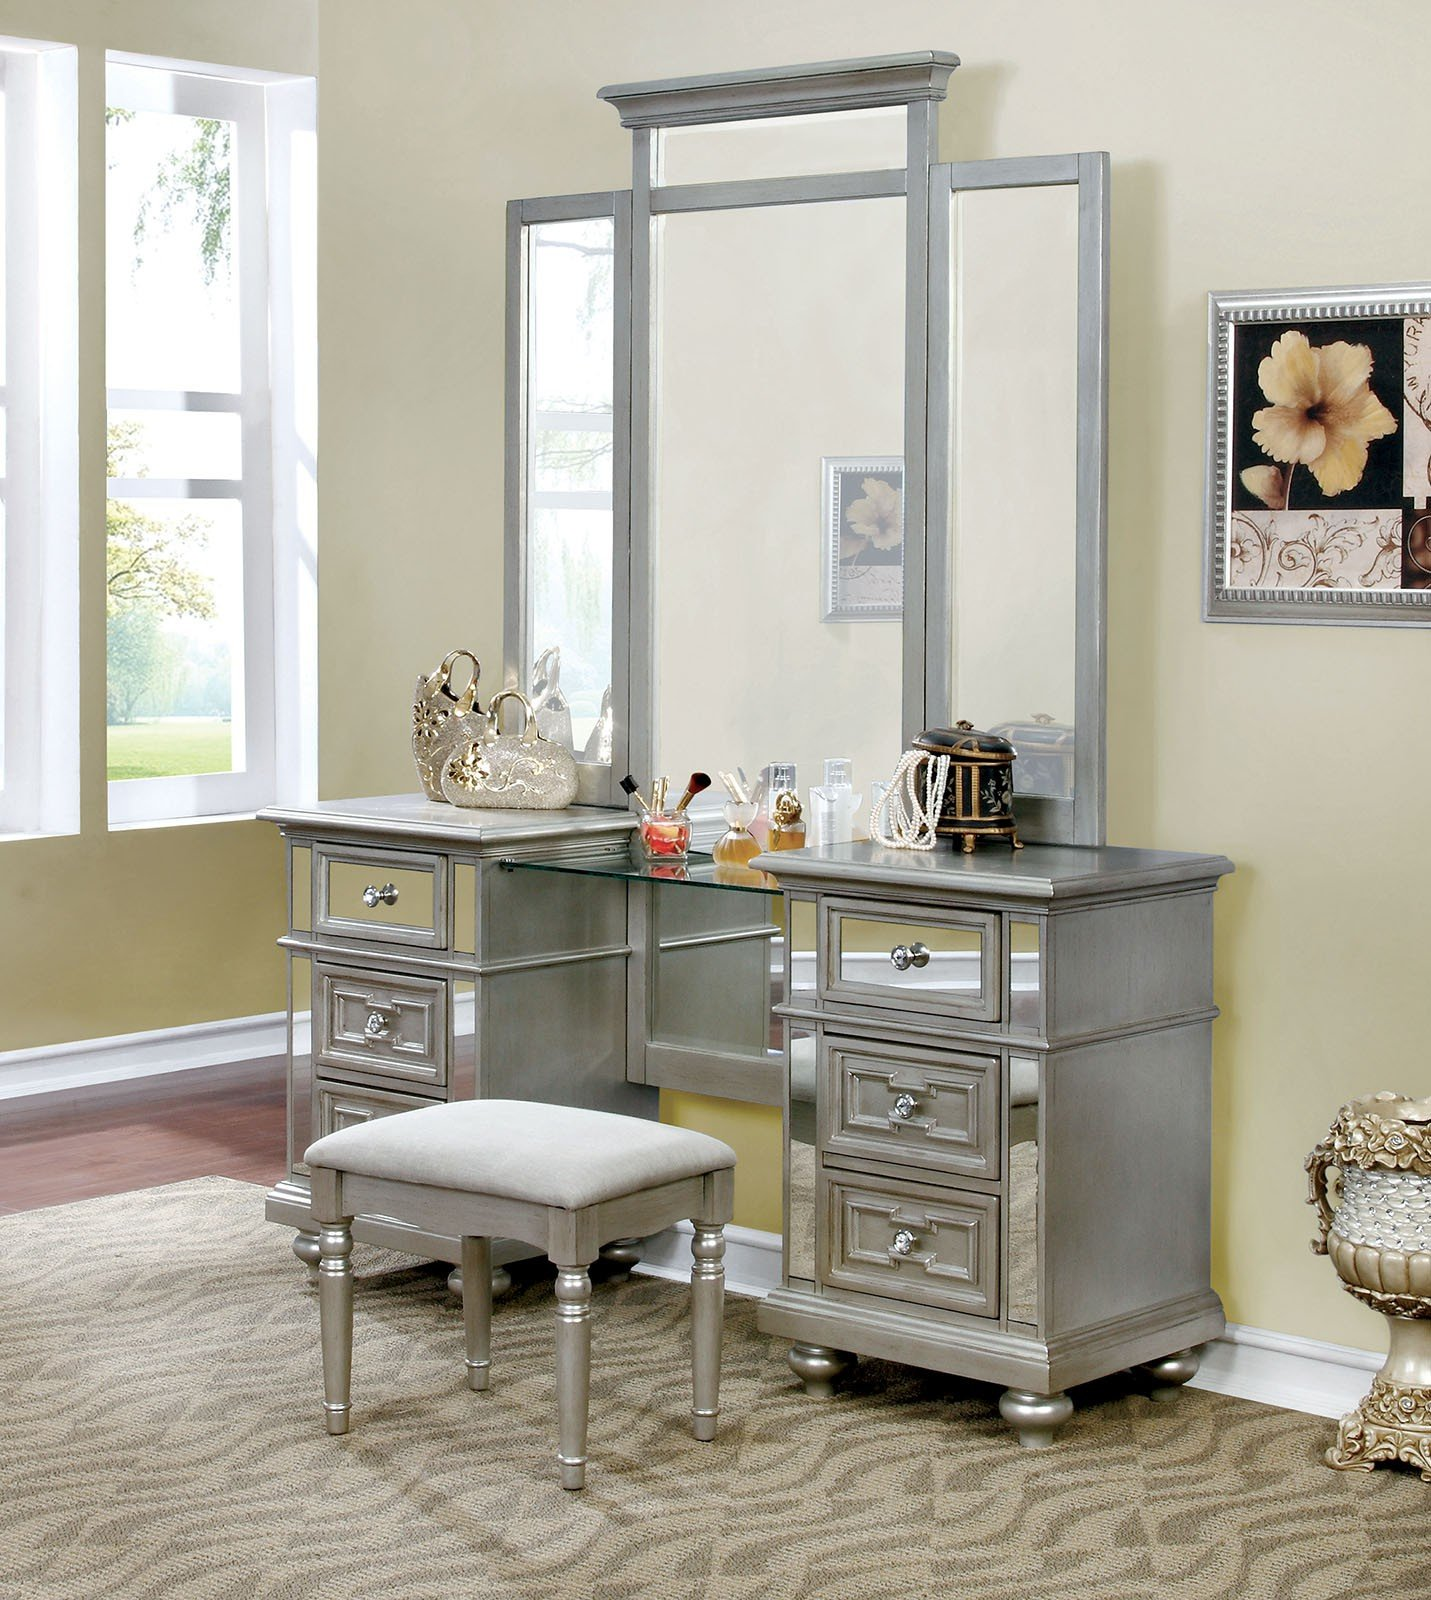 Sophia Mirrored 3 Piece Vanity Make Up Table, Mirror & Bench in Silver Champagne by FA Furnishing